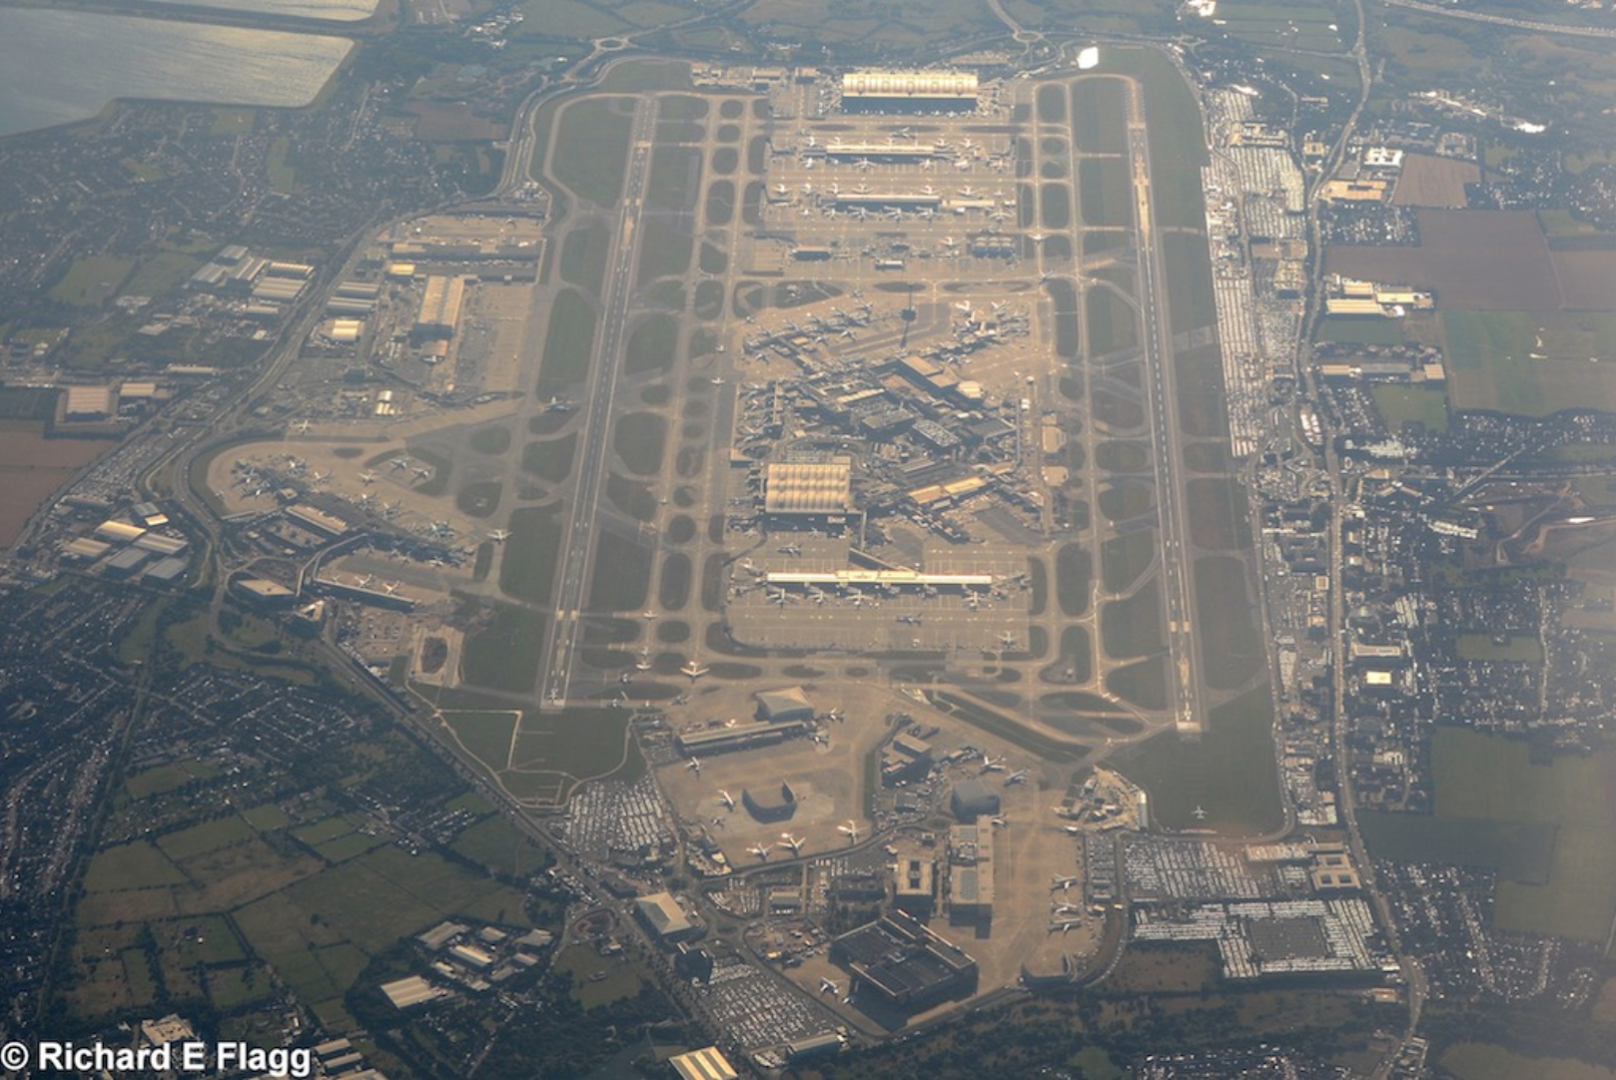 018Aerial View of Heathrow Airport - 23 July 2016.png